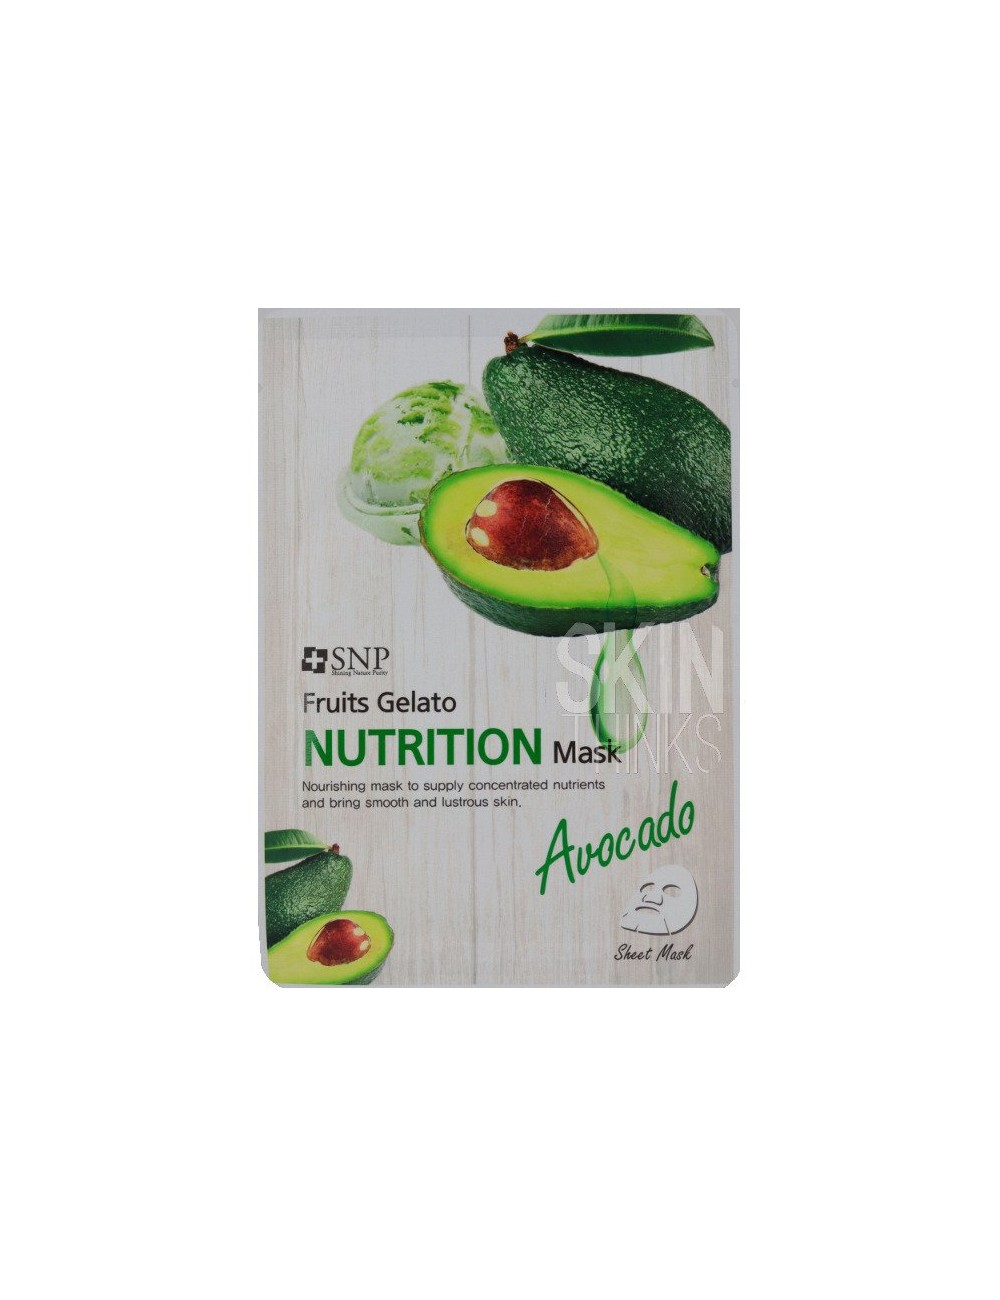 Mascarilla Nutritiva SNP Fruits Gelato Nutrition Mask